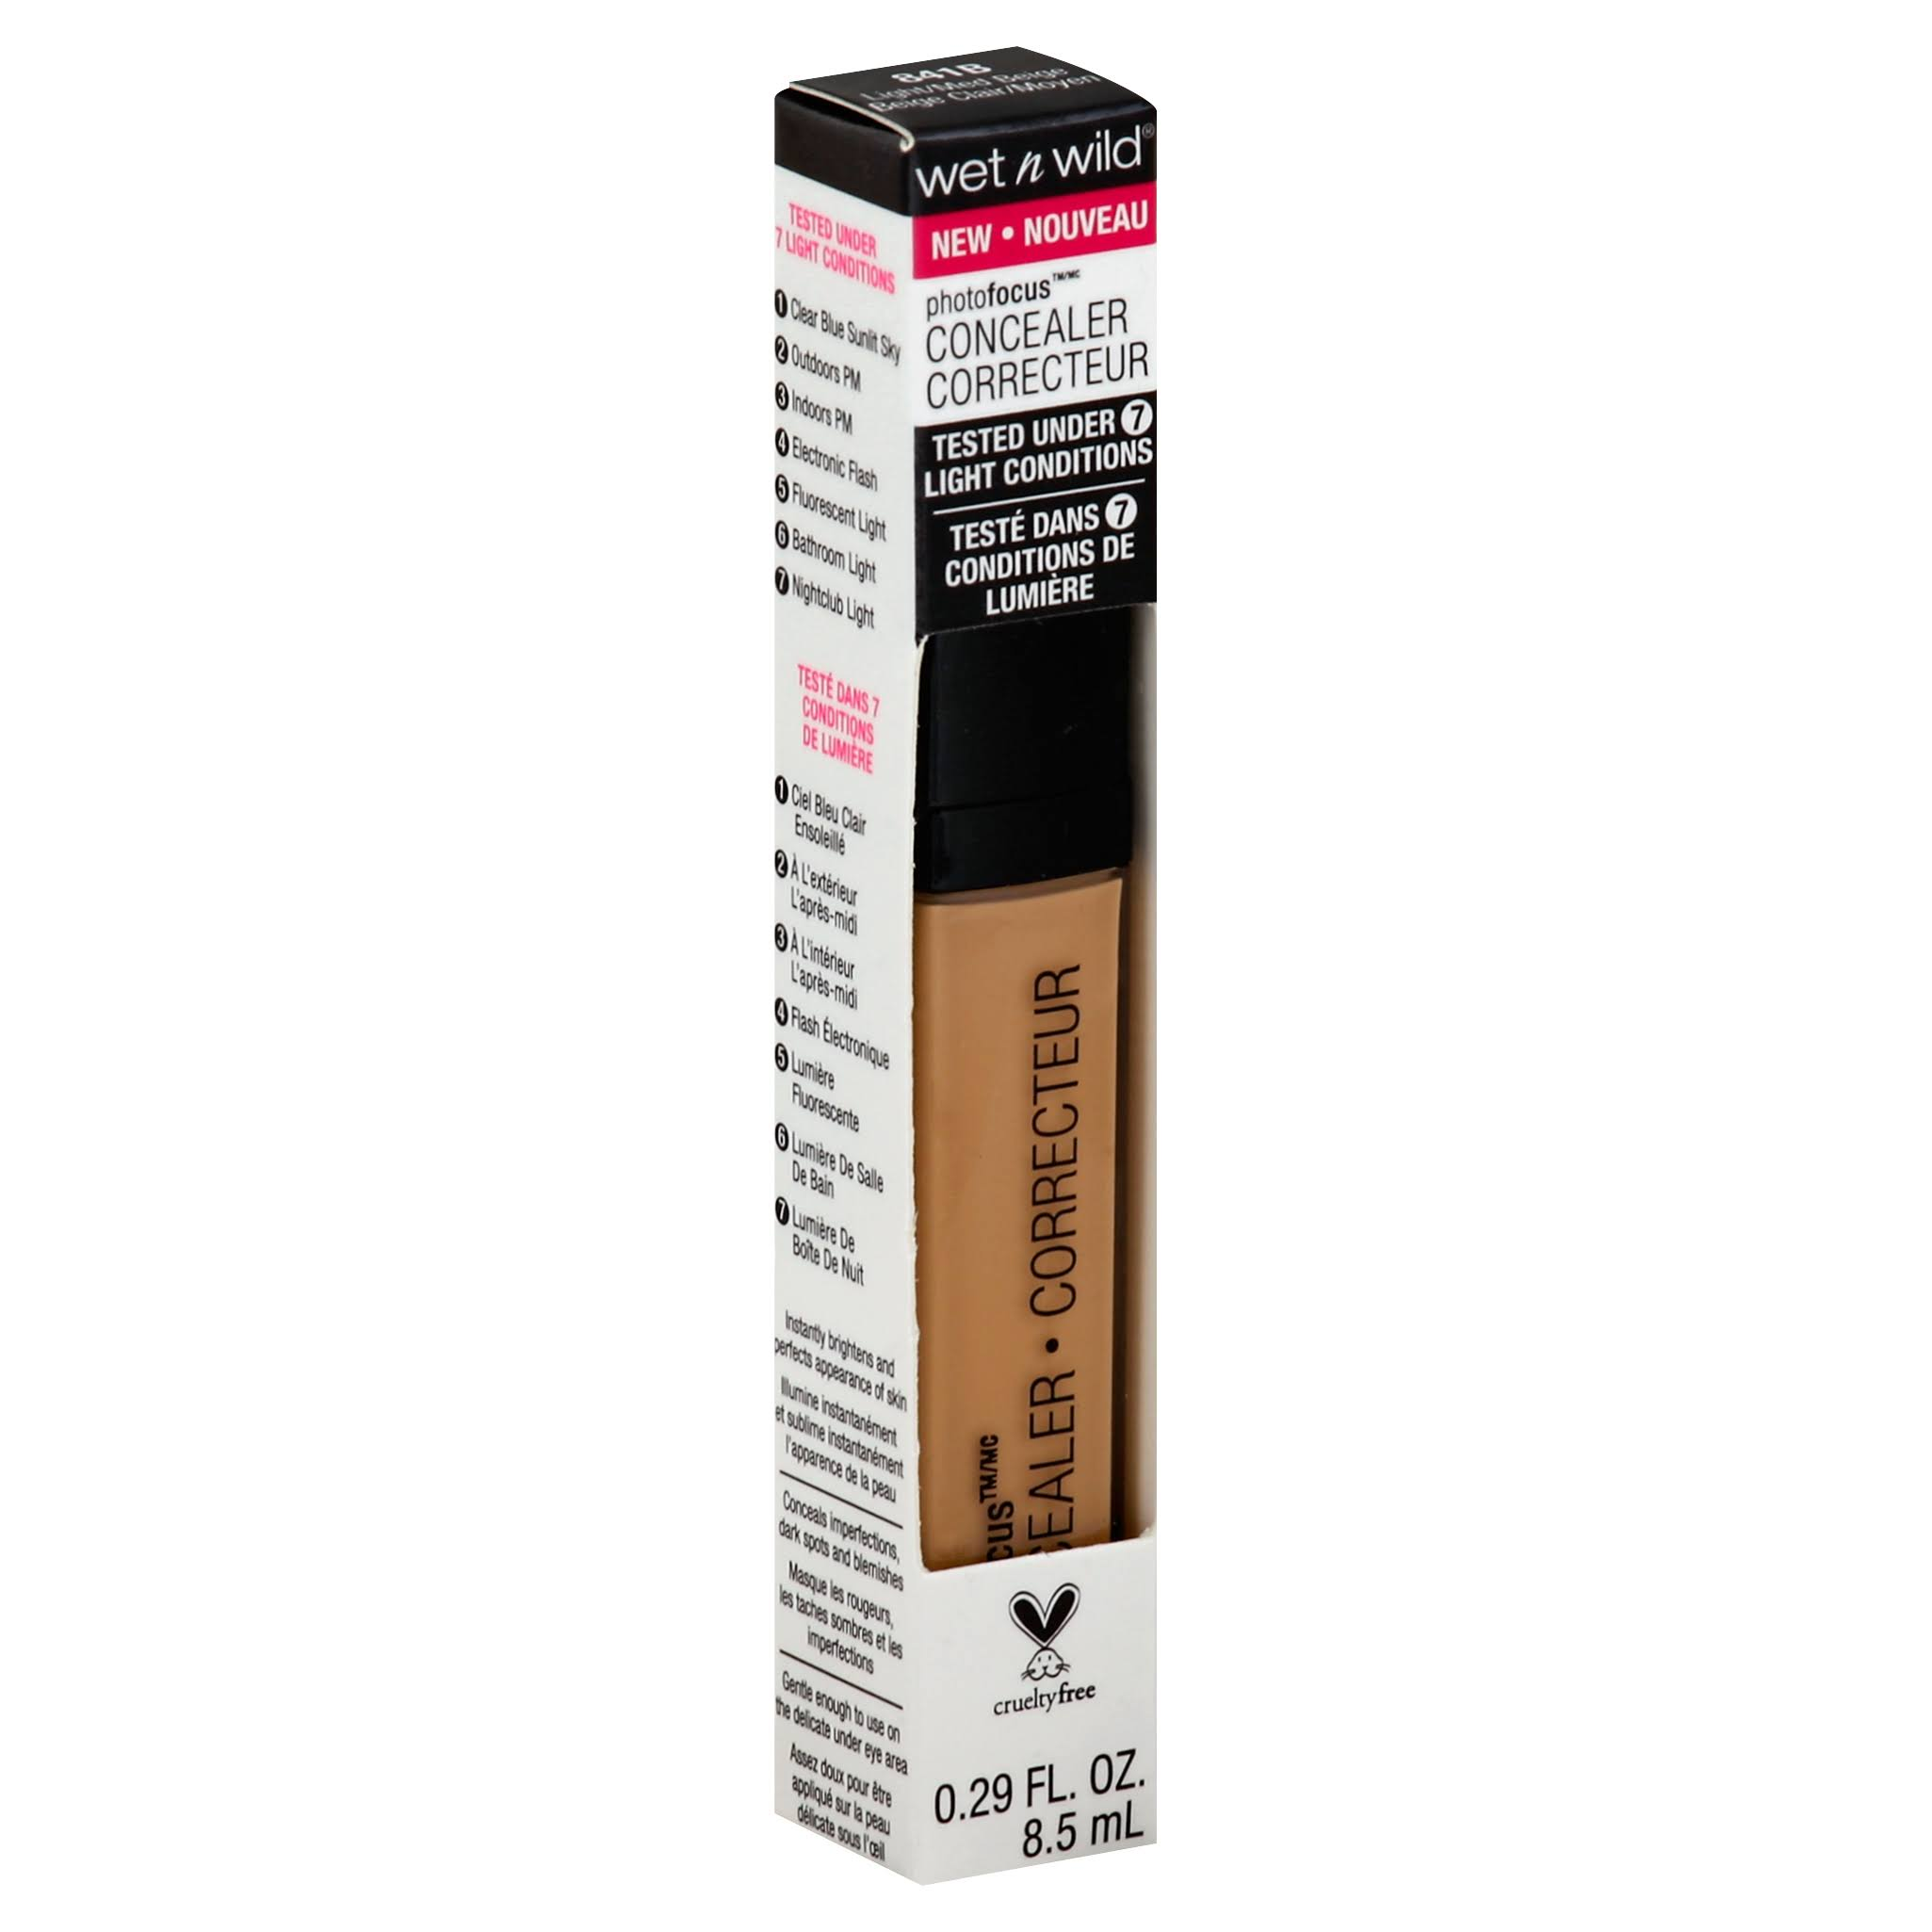 Wet N Wild Photo Focus Concealer - Light and Medium Beige 841B